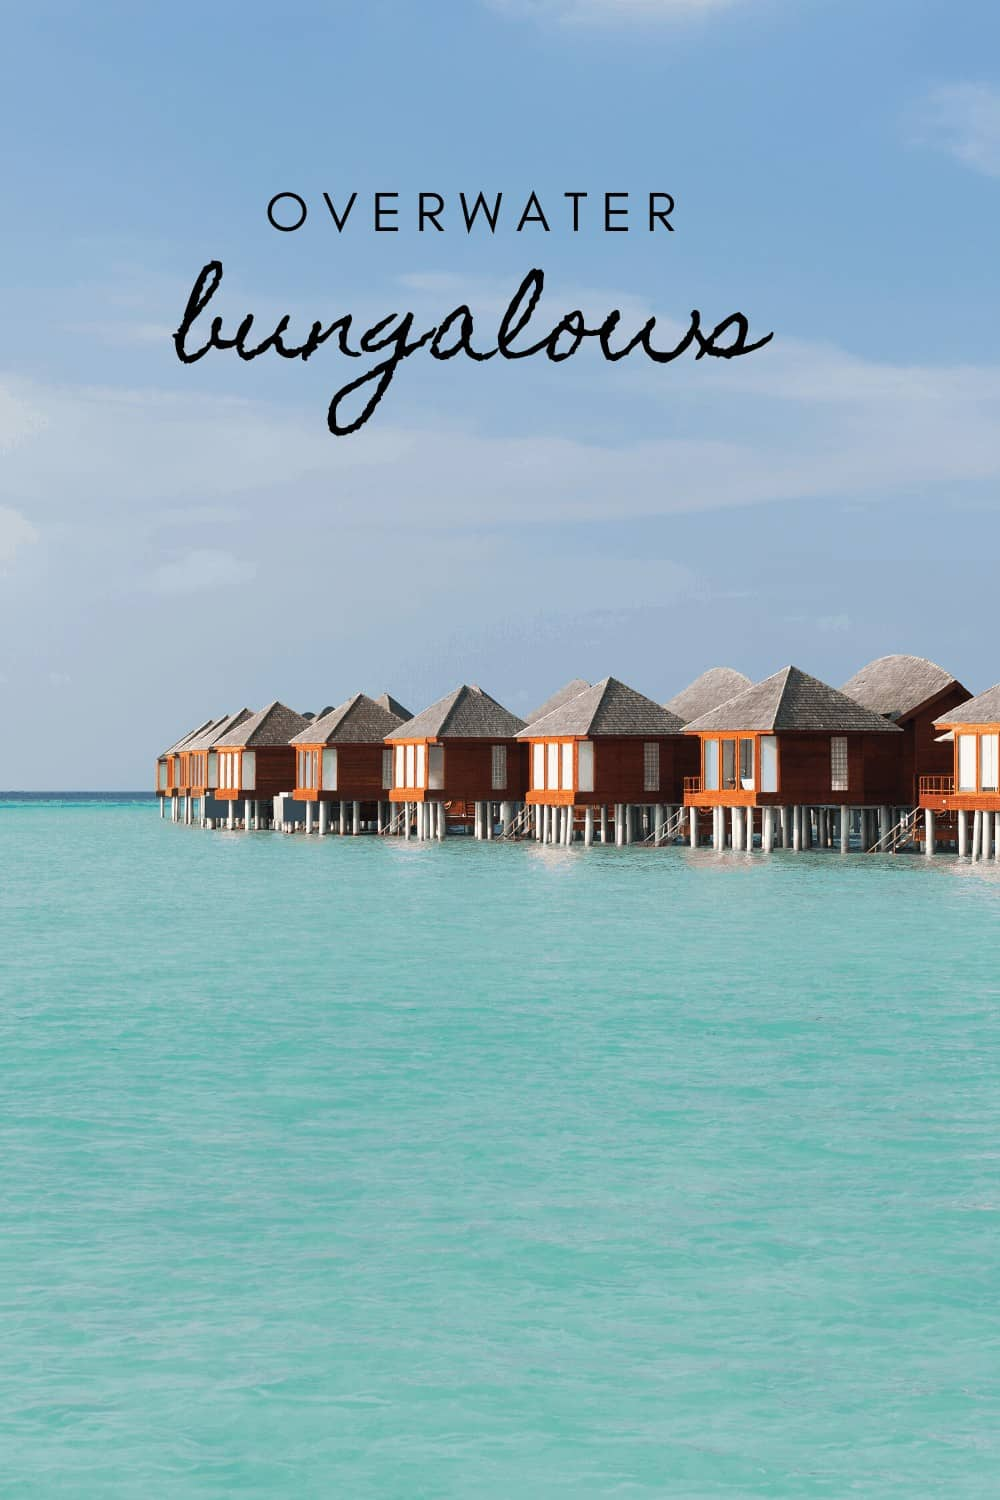 bungalows overwater many of them